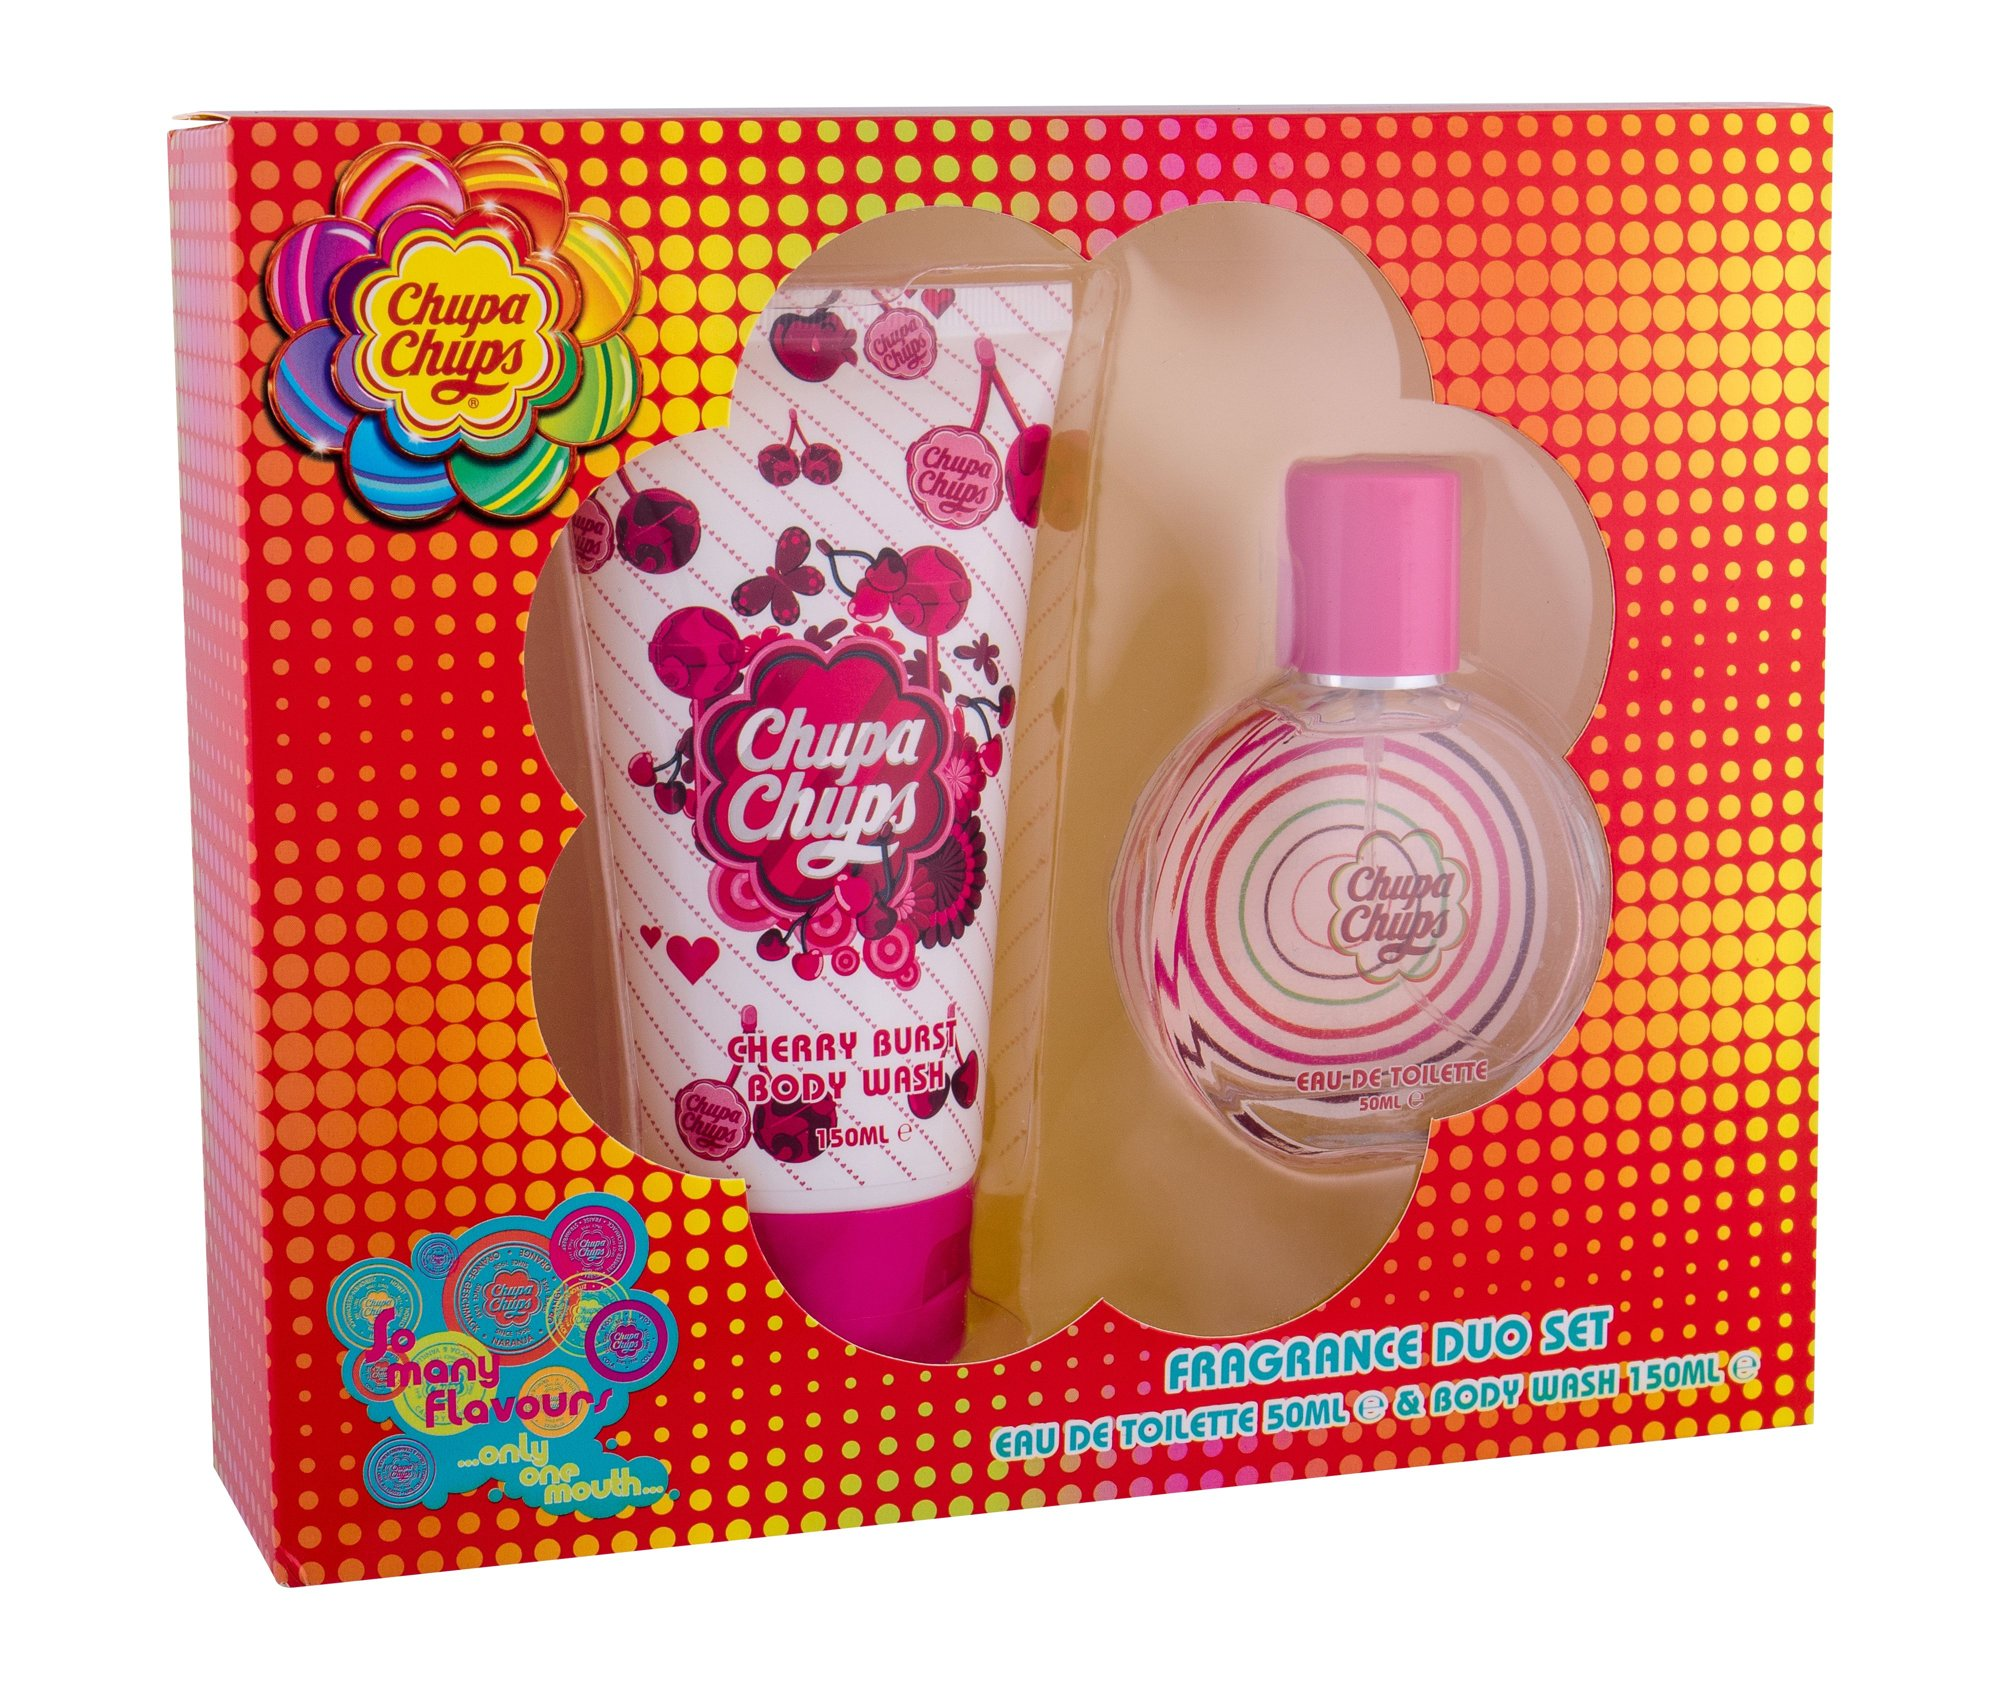 Chupa Chups Cherry Burst Eau de Toilette 50ml